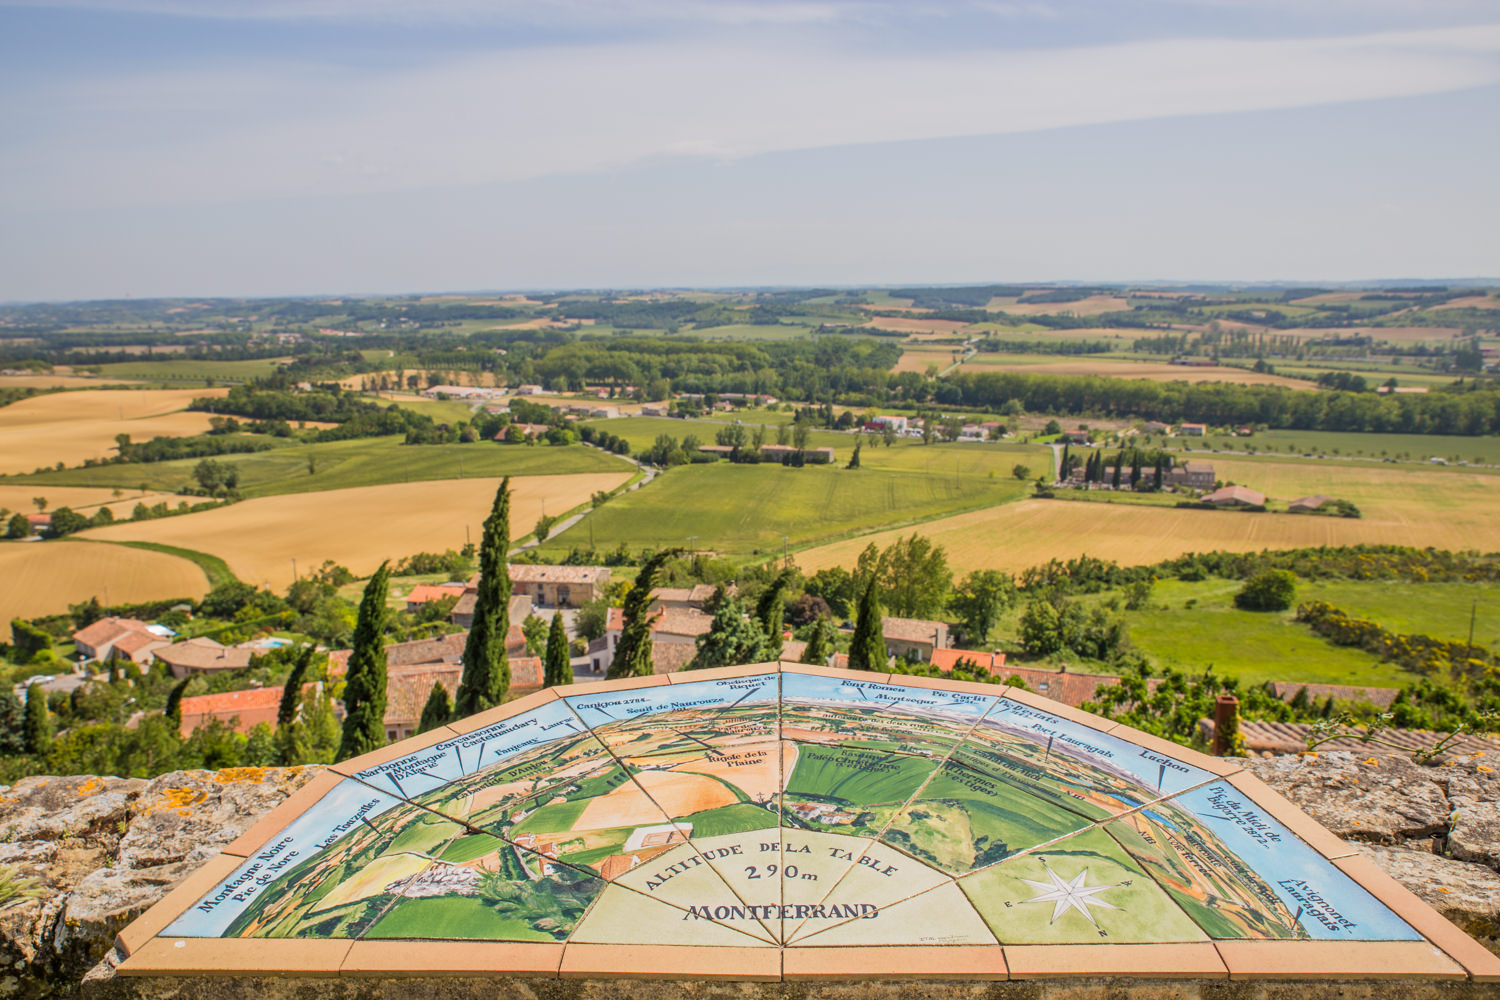 Table d'orientation à Montferrand, Lauragais, ©Office de Tourisme de Castelnaudary